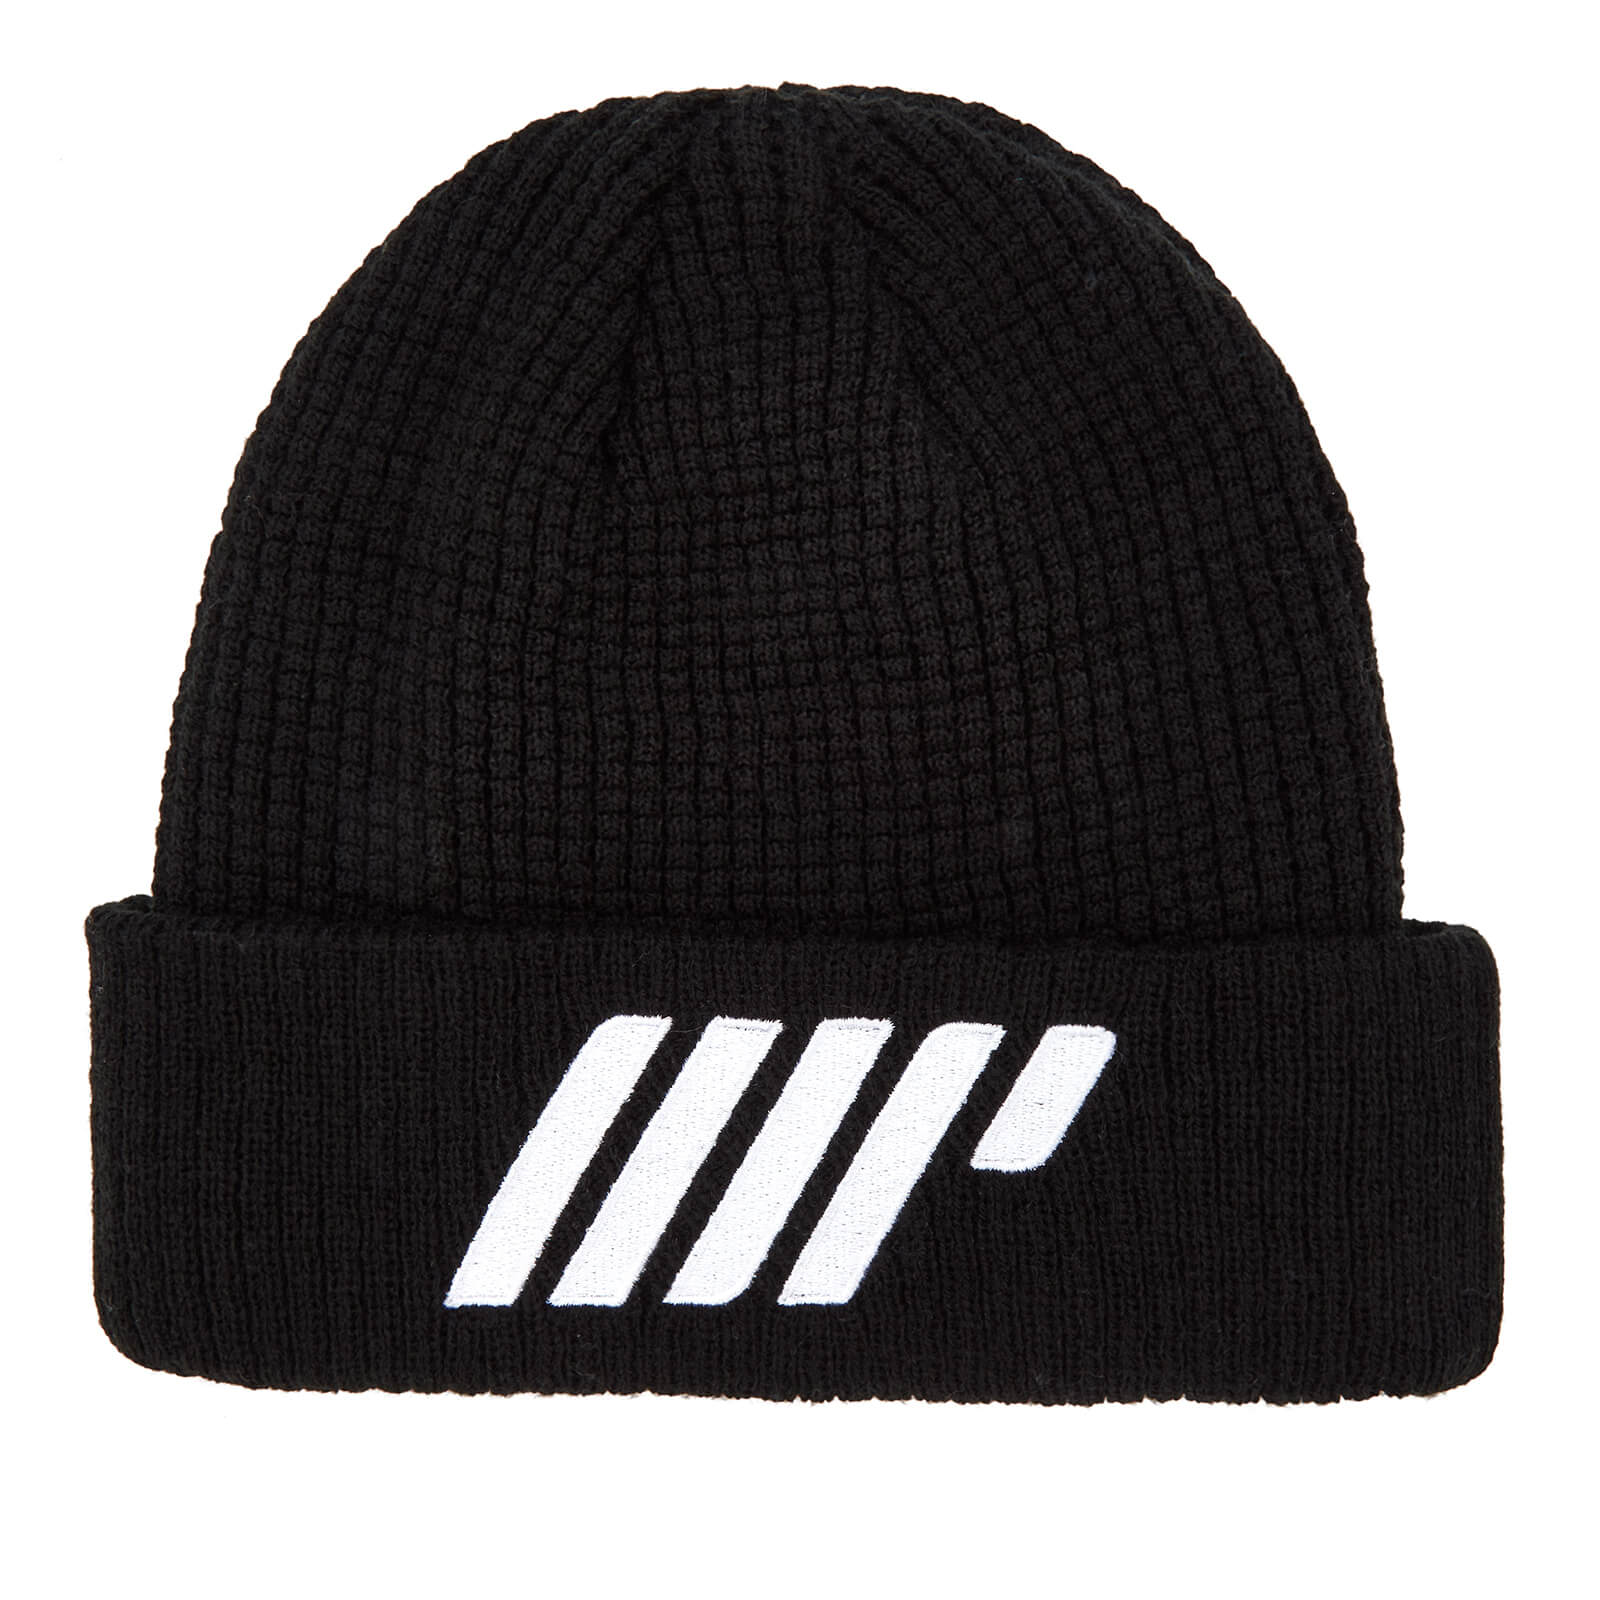 Buy Black Knitted Beanie  65301a85347